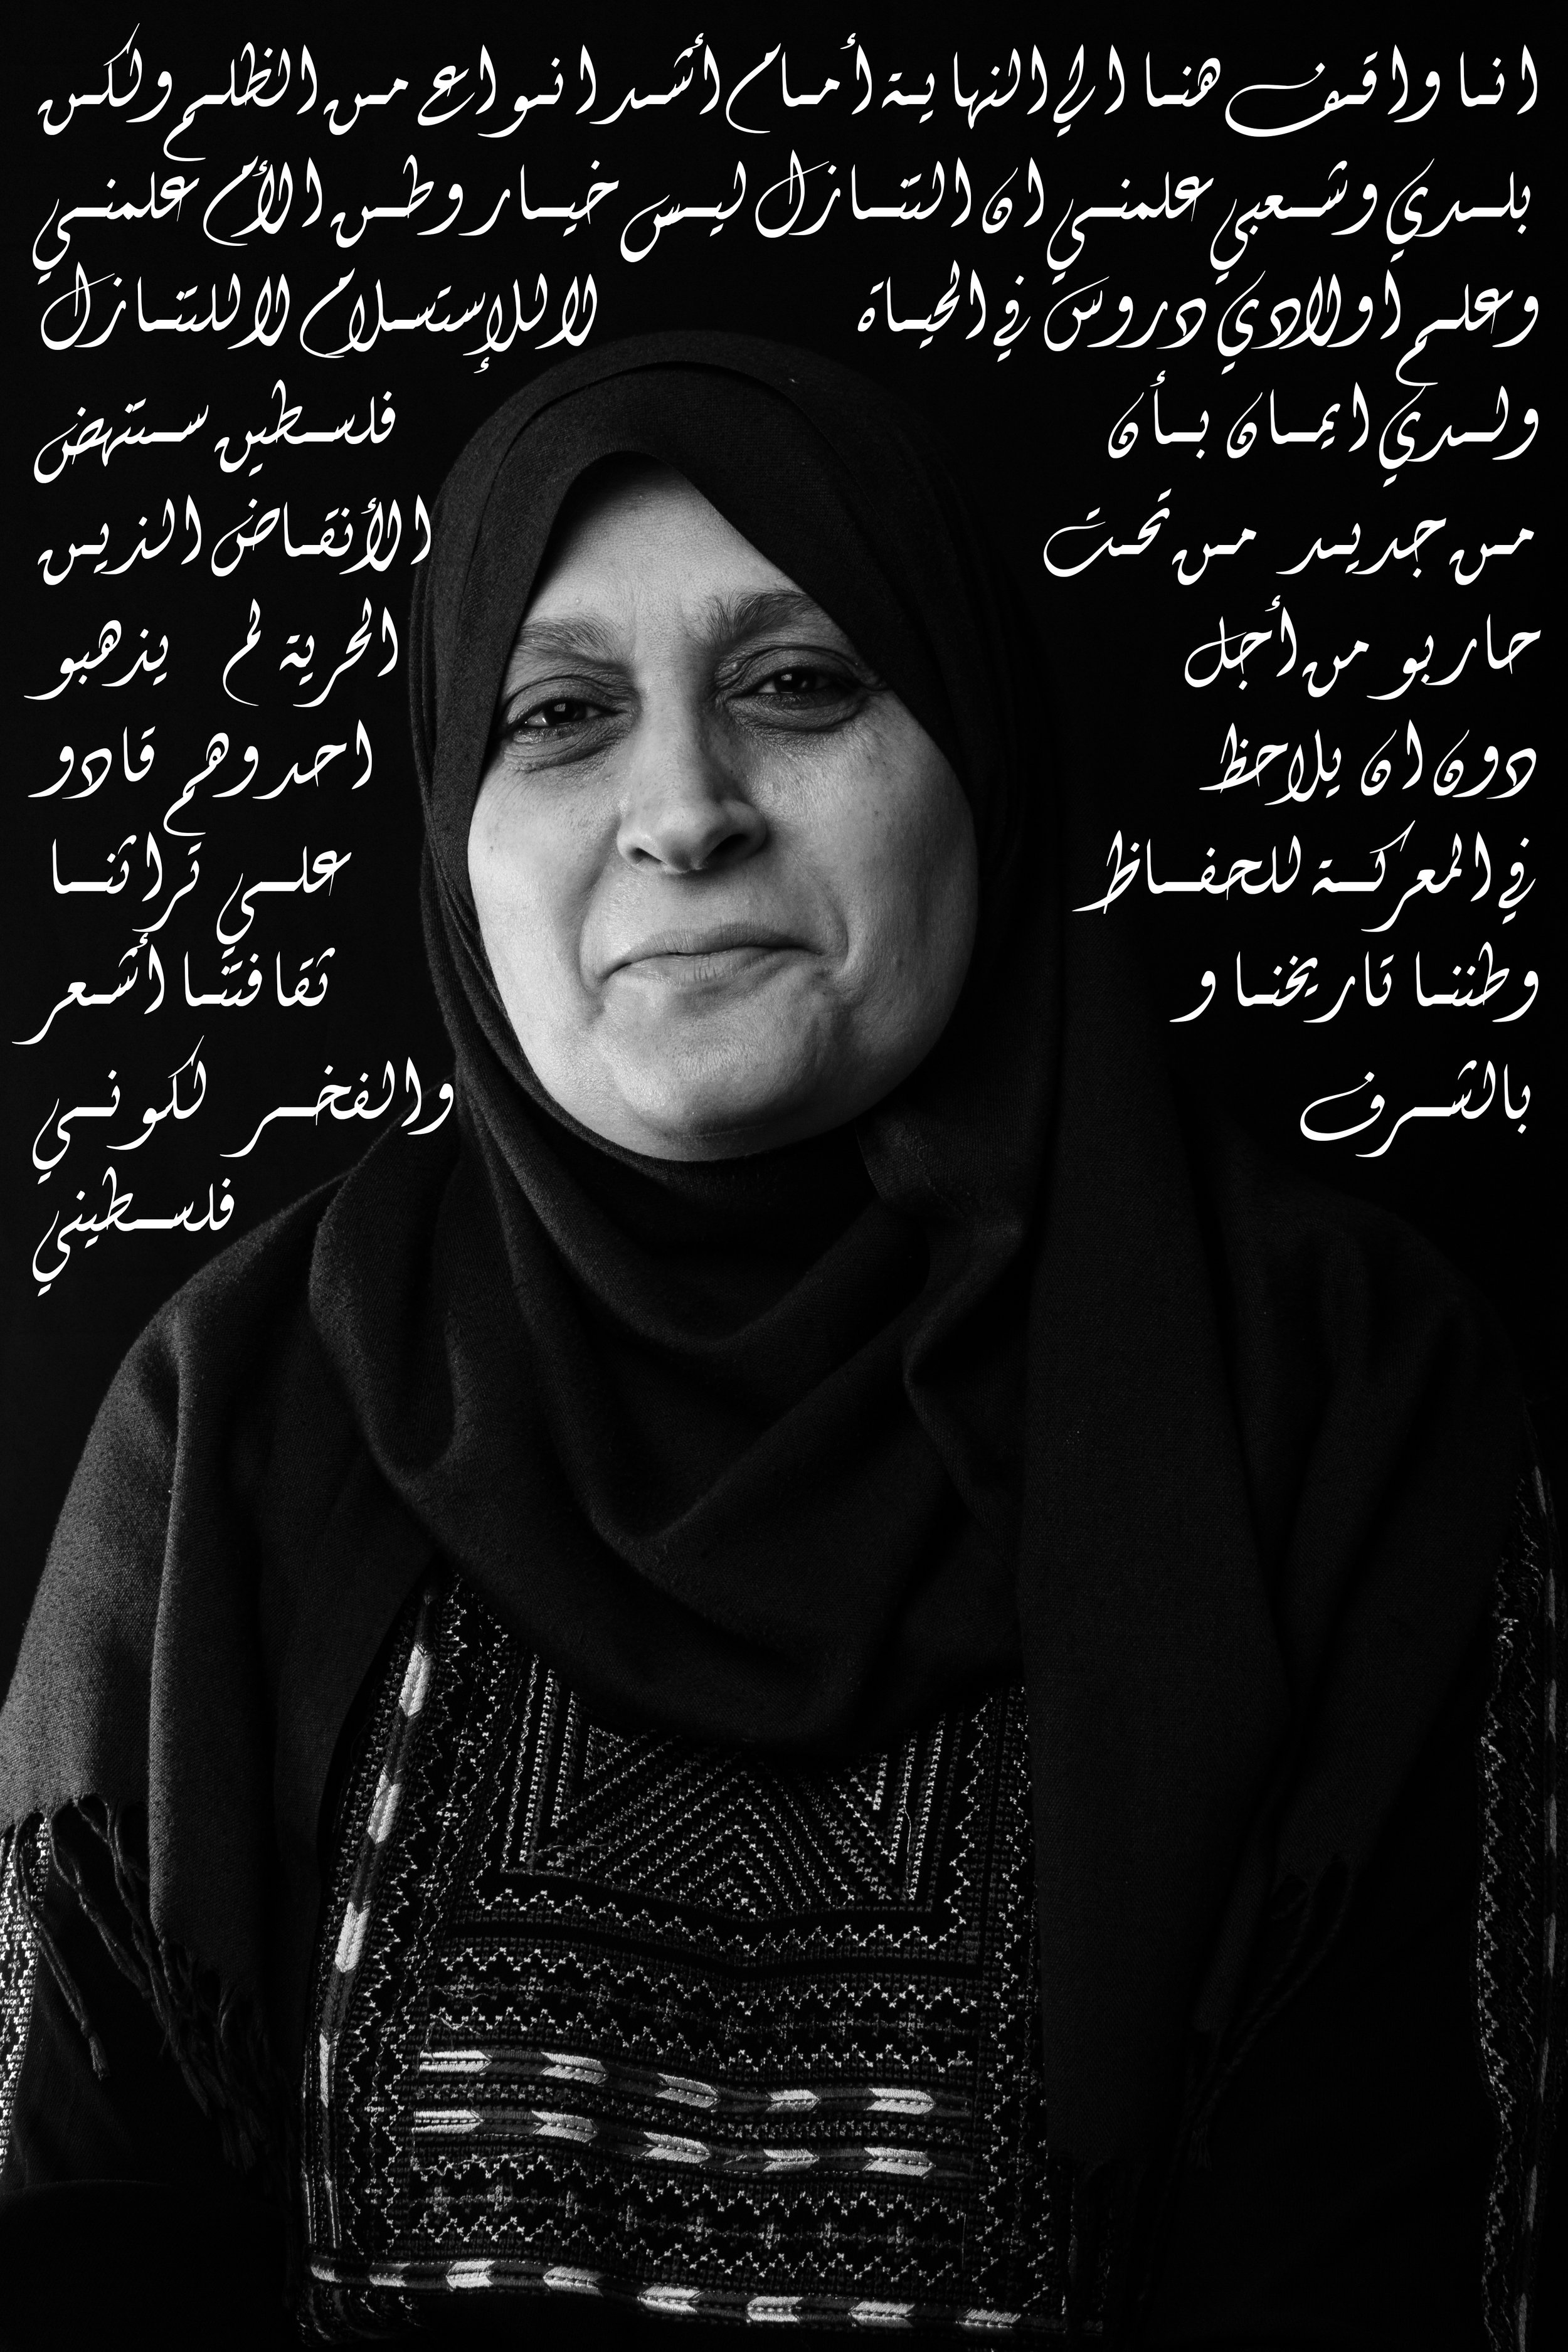 """""""I am standing relentlessly against the worst kind of oppression, but my country and my people have taught me that giving up is not an option. My motherland has taught me and my children life lessons; not to surrender, not to waiver, and have belief that Palestine will rise up again from under the rubble. Those who have fought for our freedom have not gone unnoticed, and they have helped in the battle to preserve our heritage, our land, our history and our culture. It fills me with honour to be a Palestinian"""""""